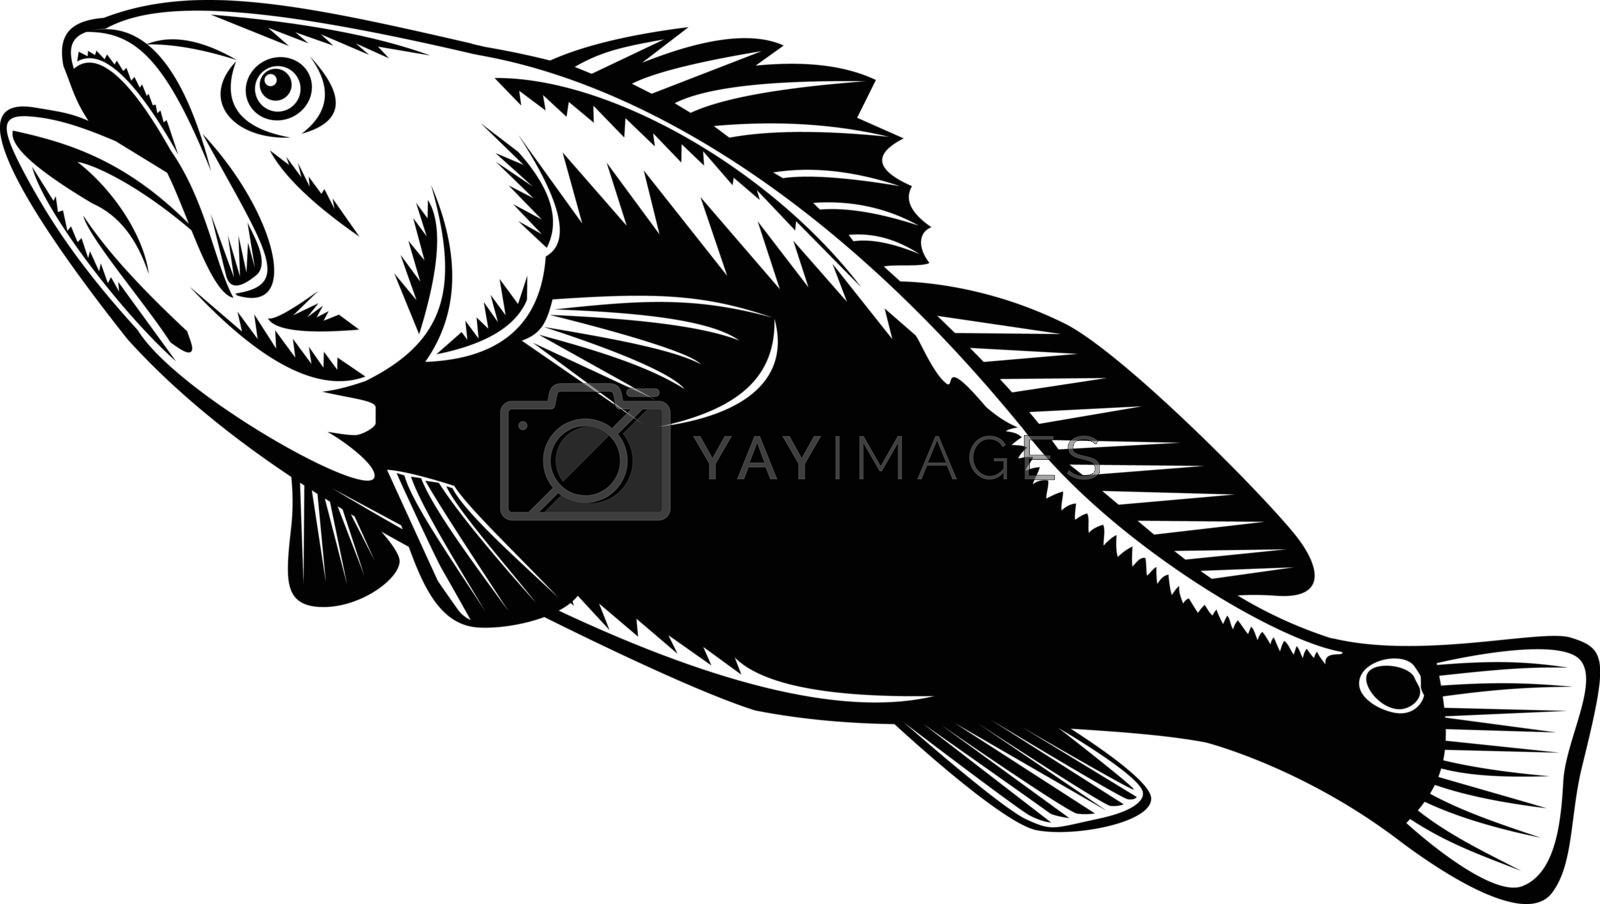 Woodcut illustration of a red drum, redfish, channel bass, puppy drum or spottail bass, a game fish found in the Atlantic Ocean from Florida to Mexico, jumping done in black and white retro style.